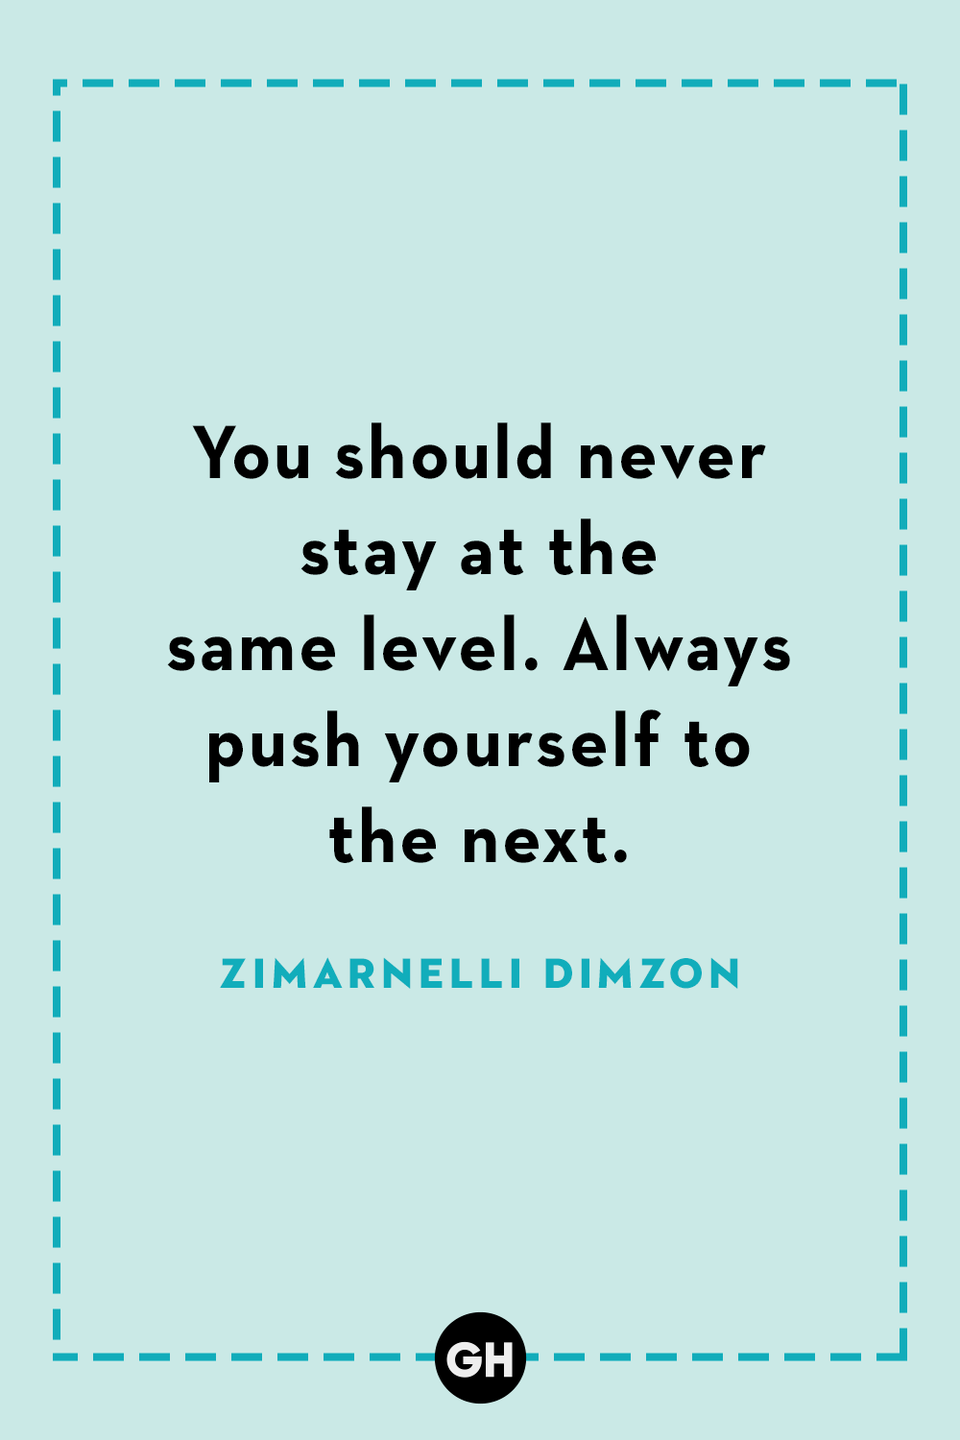 <p>You should never stay at the same level. Always push yourself to the next.</p>